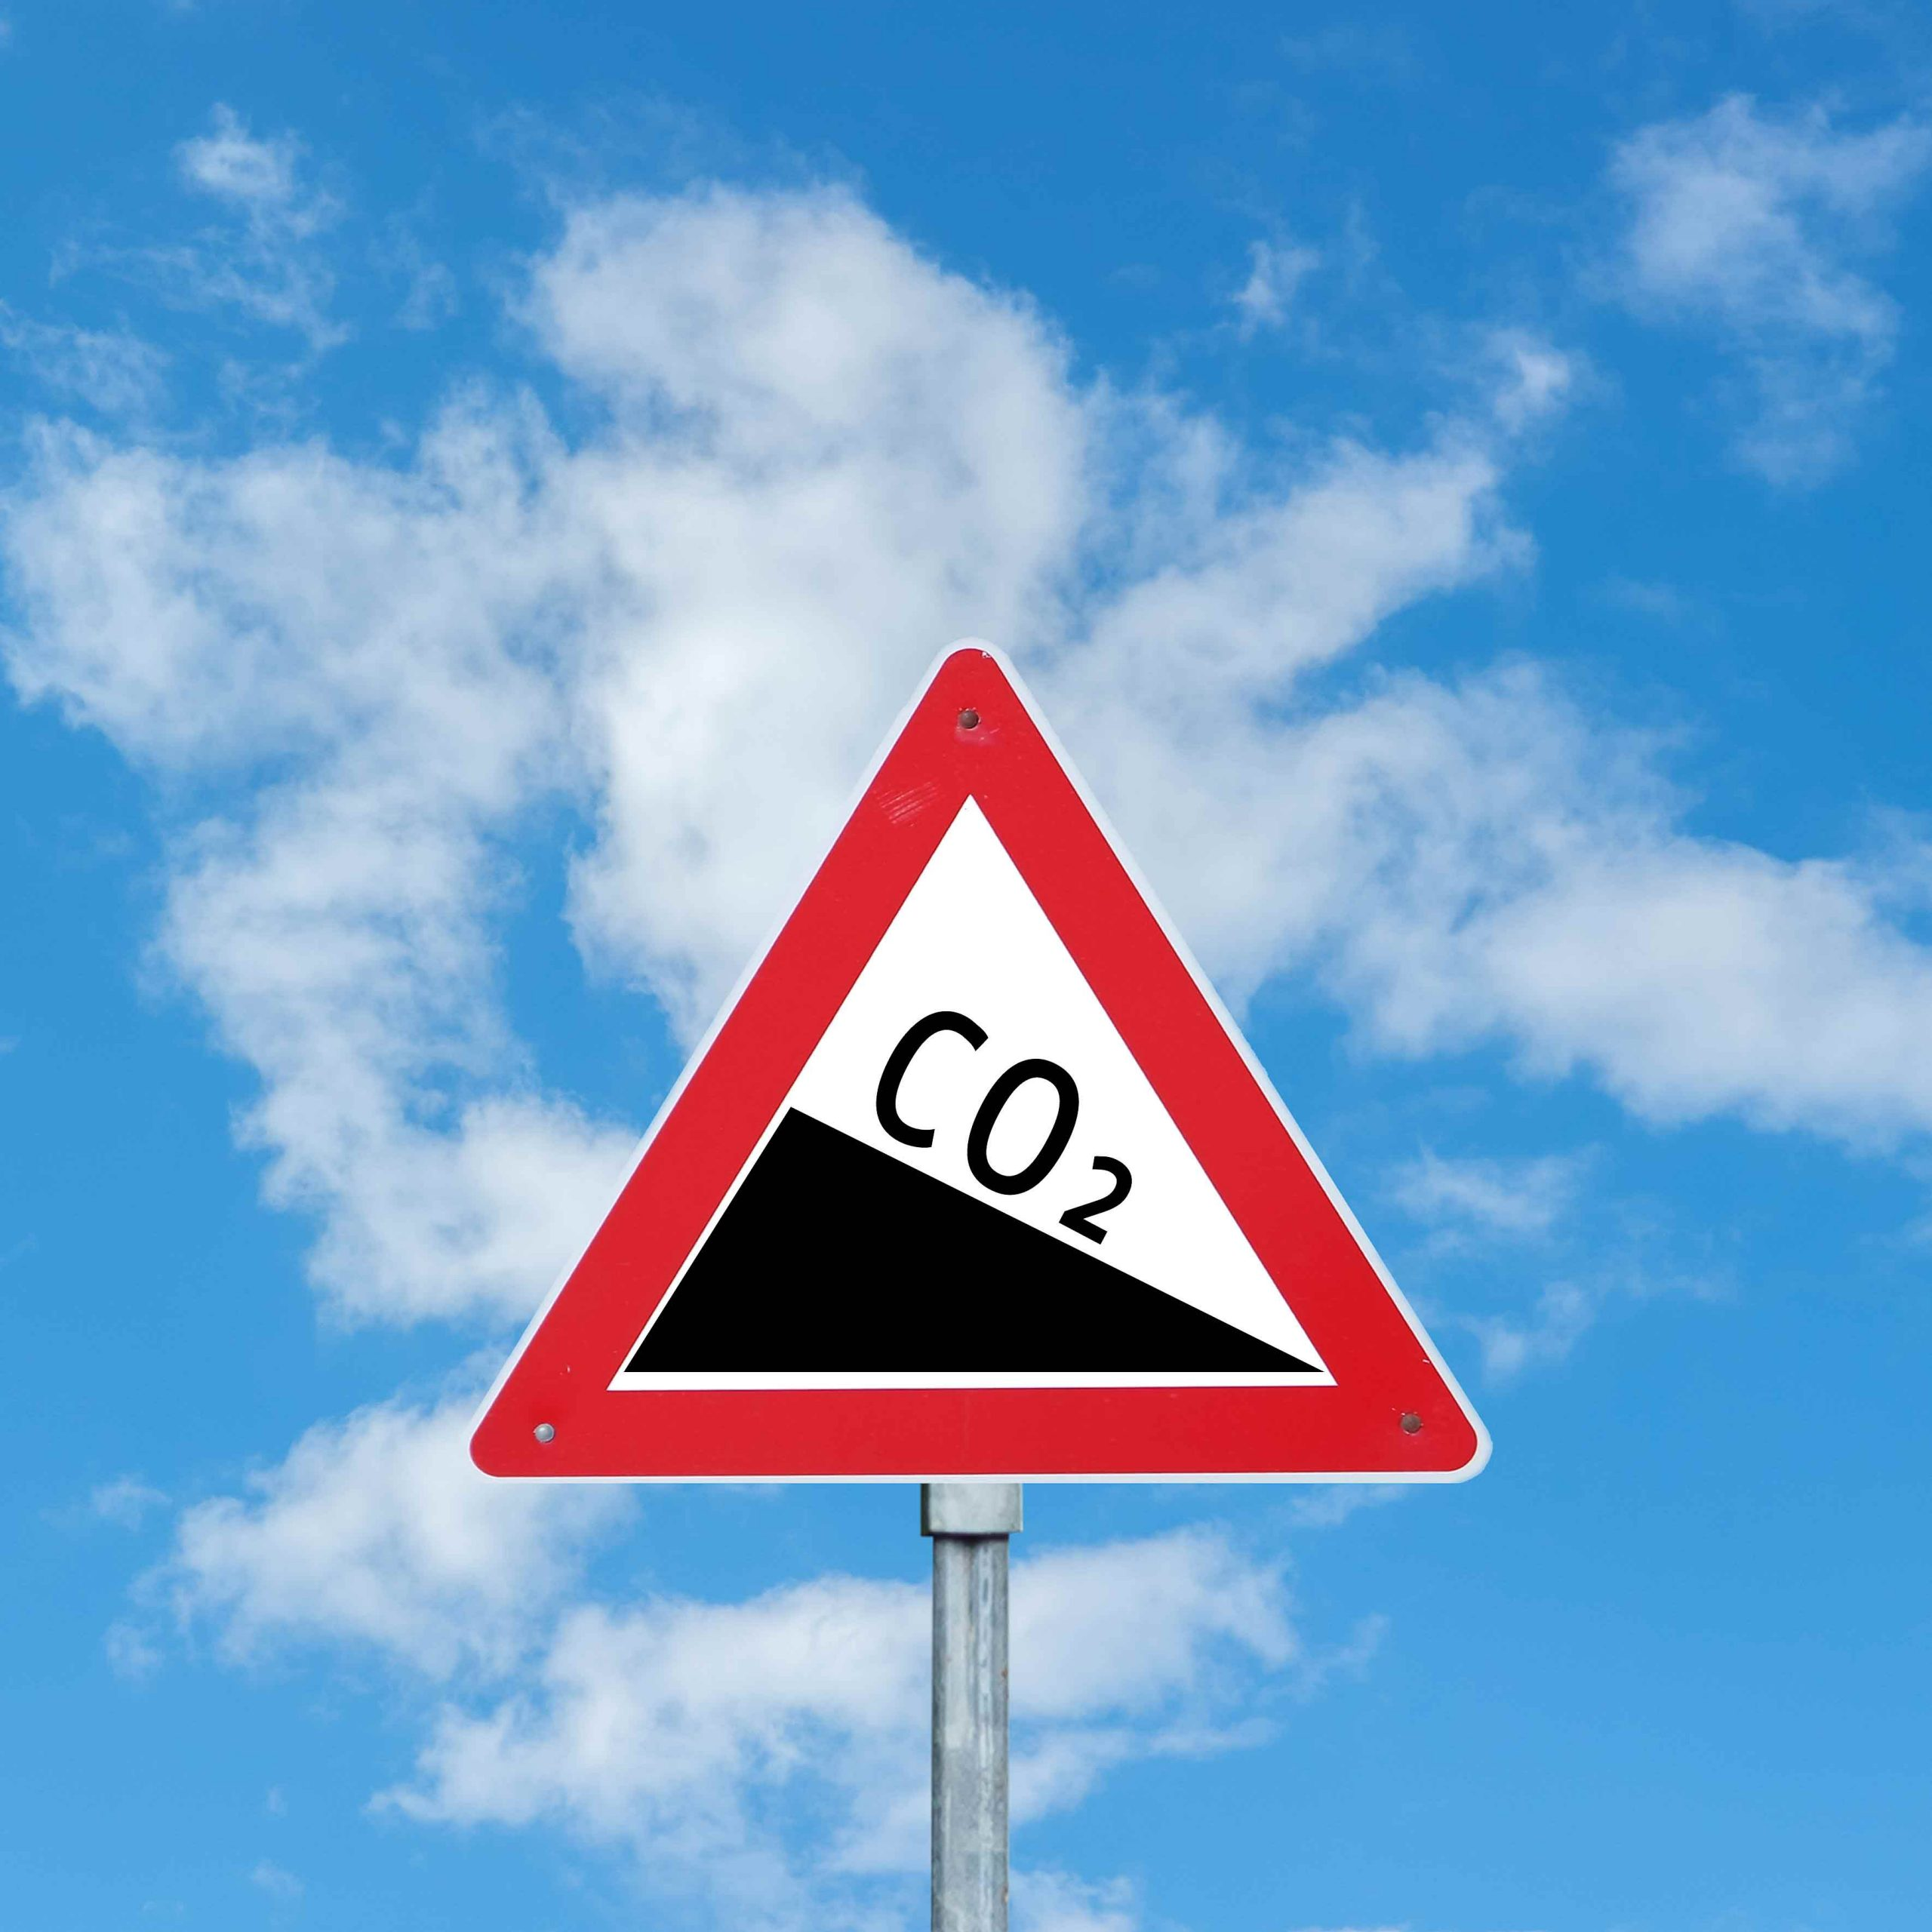 CO2 reducing from cycling in lockdown